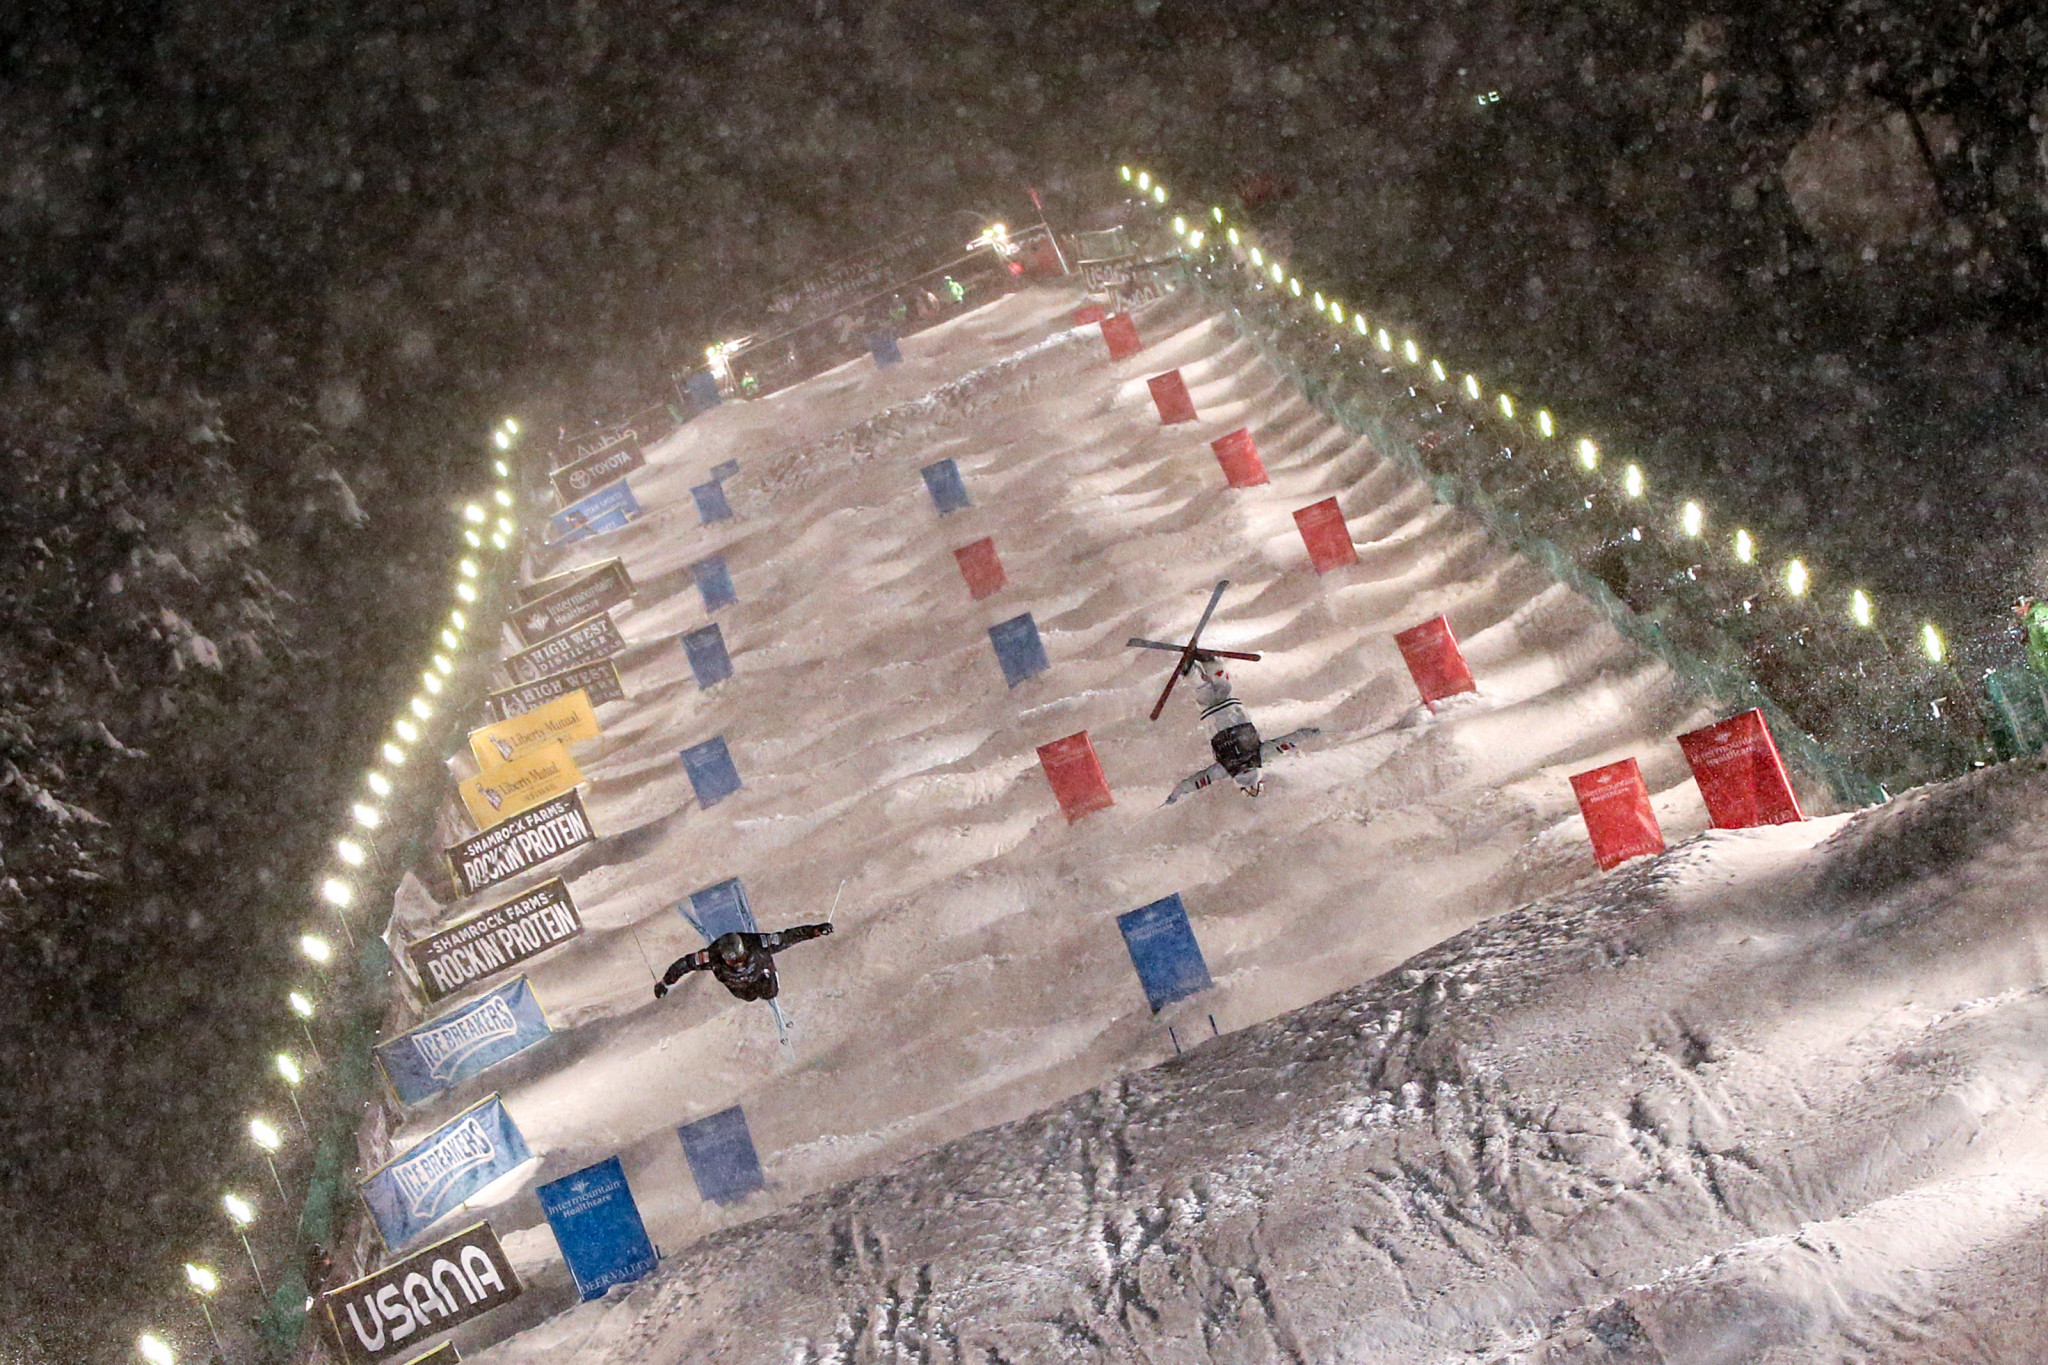 U.S. Ski & Snowboard launches moguls development team with gold medals in mind